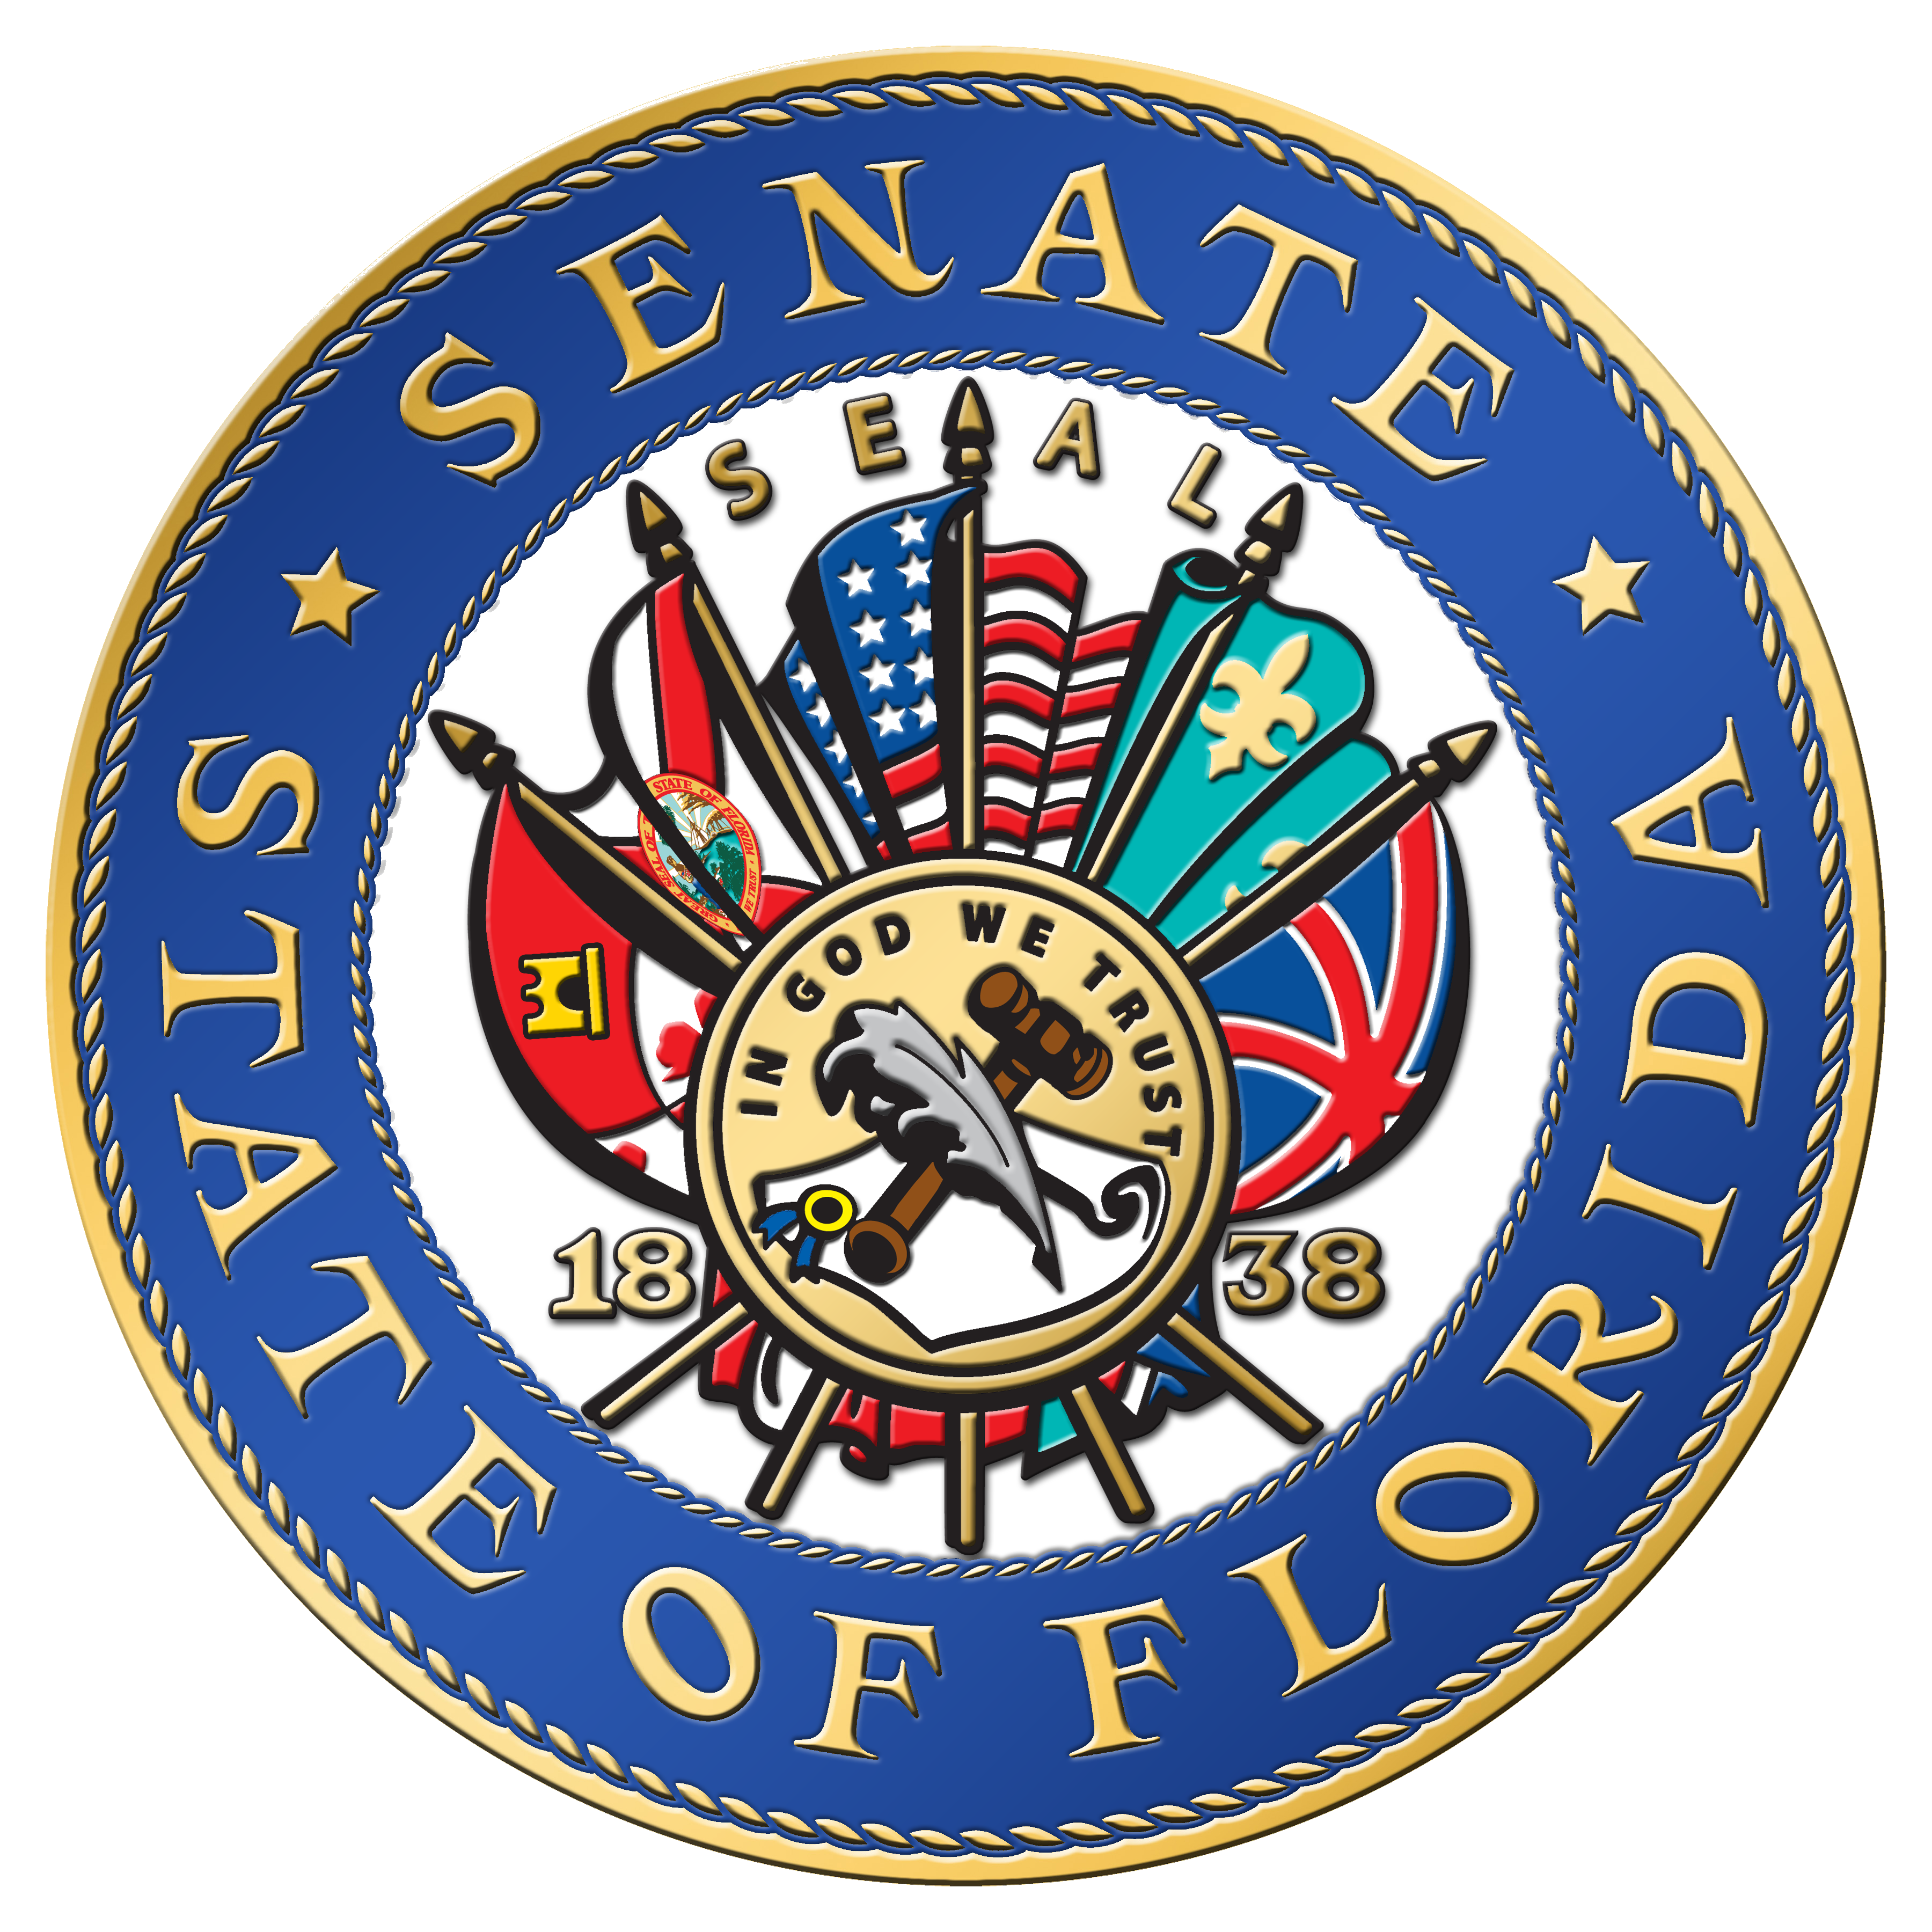 Florida state seal png. Senate to remove battle